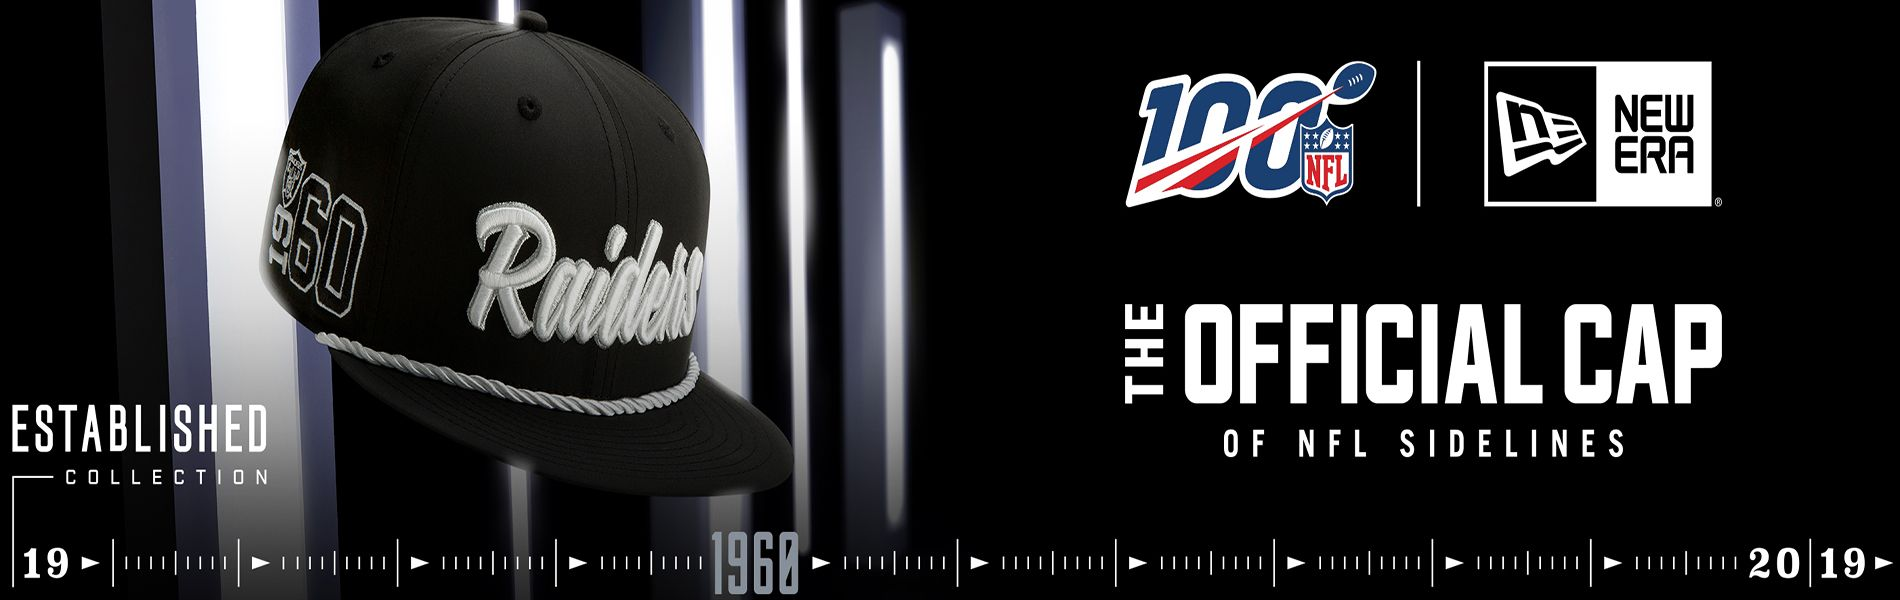 4b803314 The Raider Image - The Official Store for Oakland Raiders Merchandise